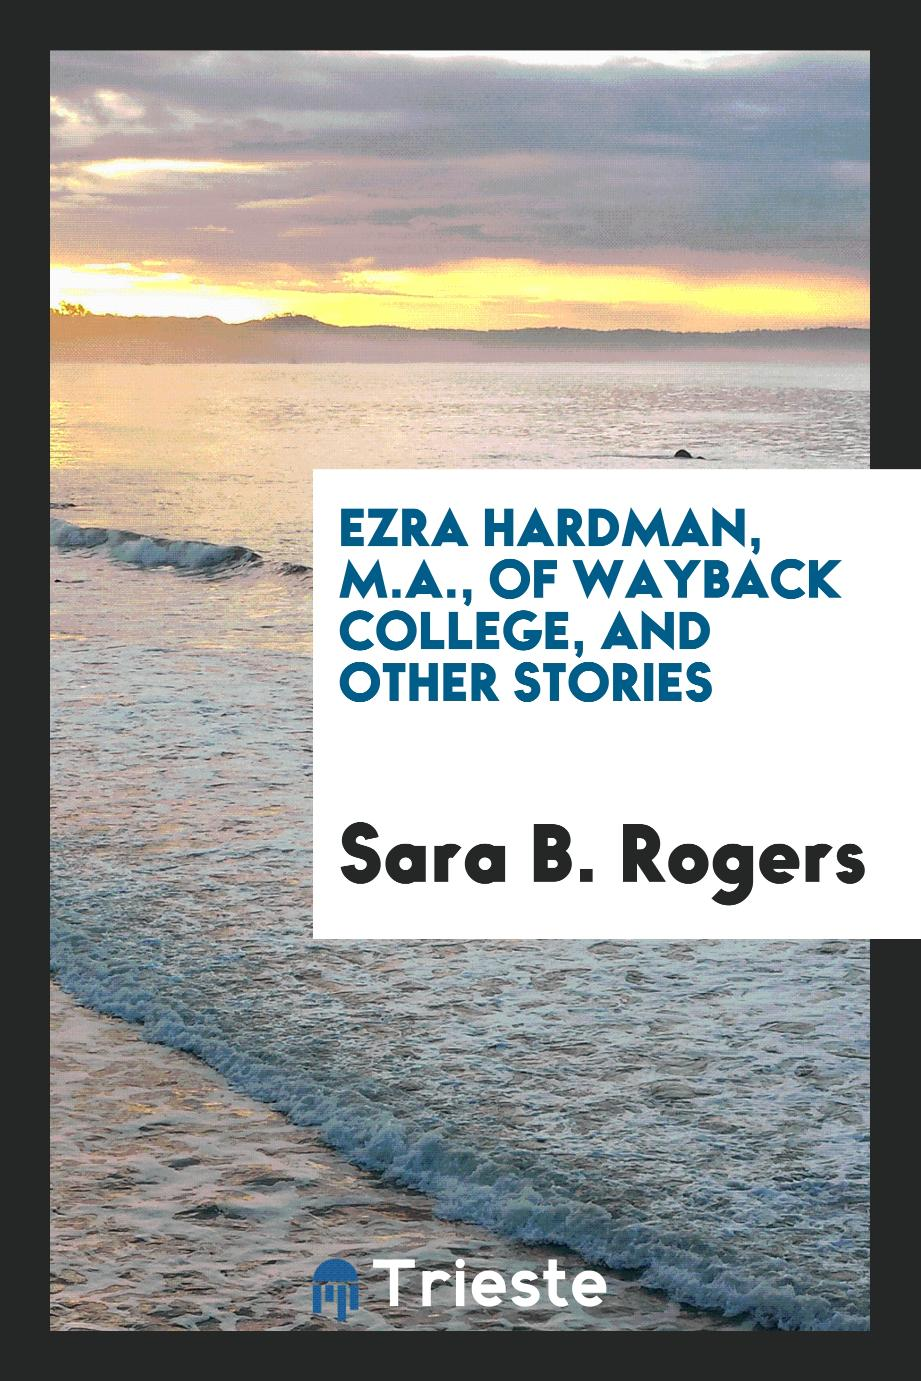 Ezra Hardman, M.A., of Wayback College, and other stories